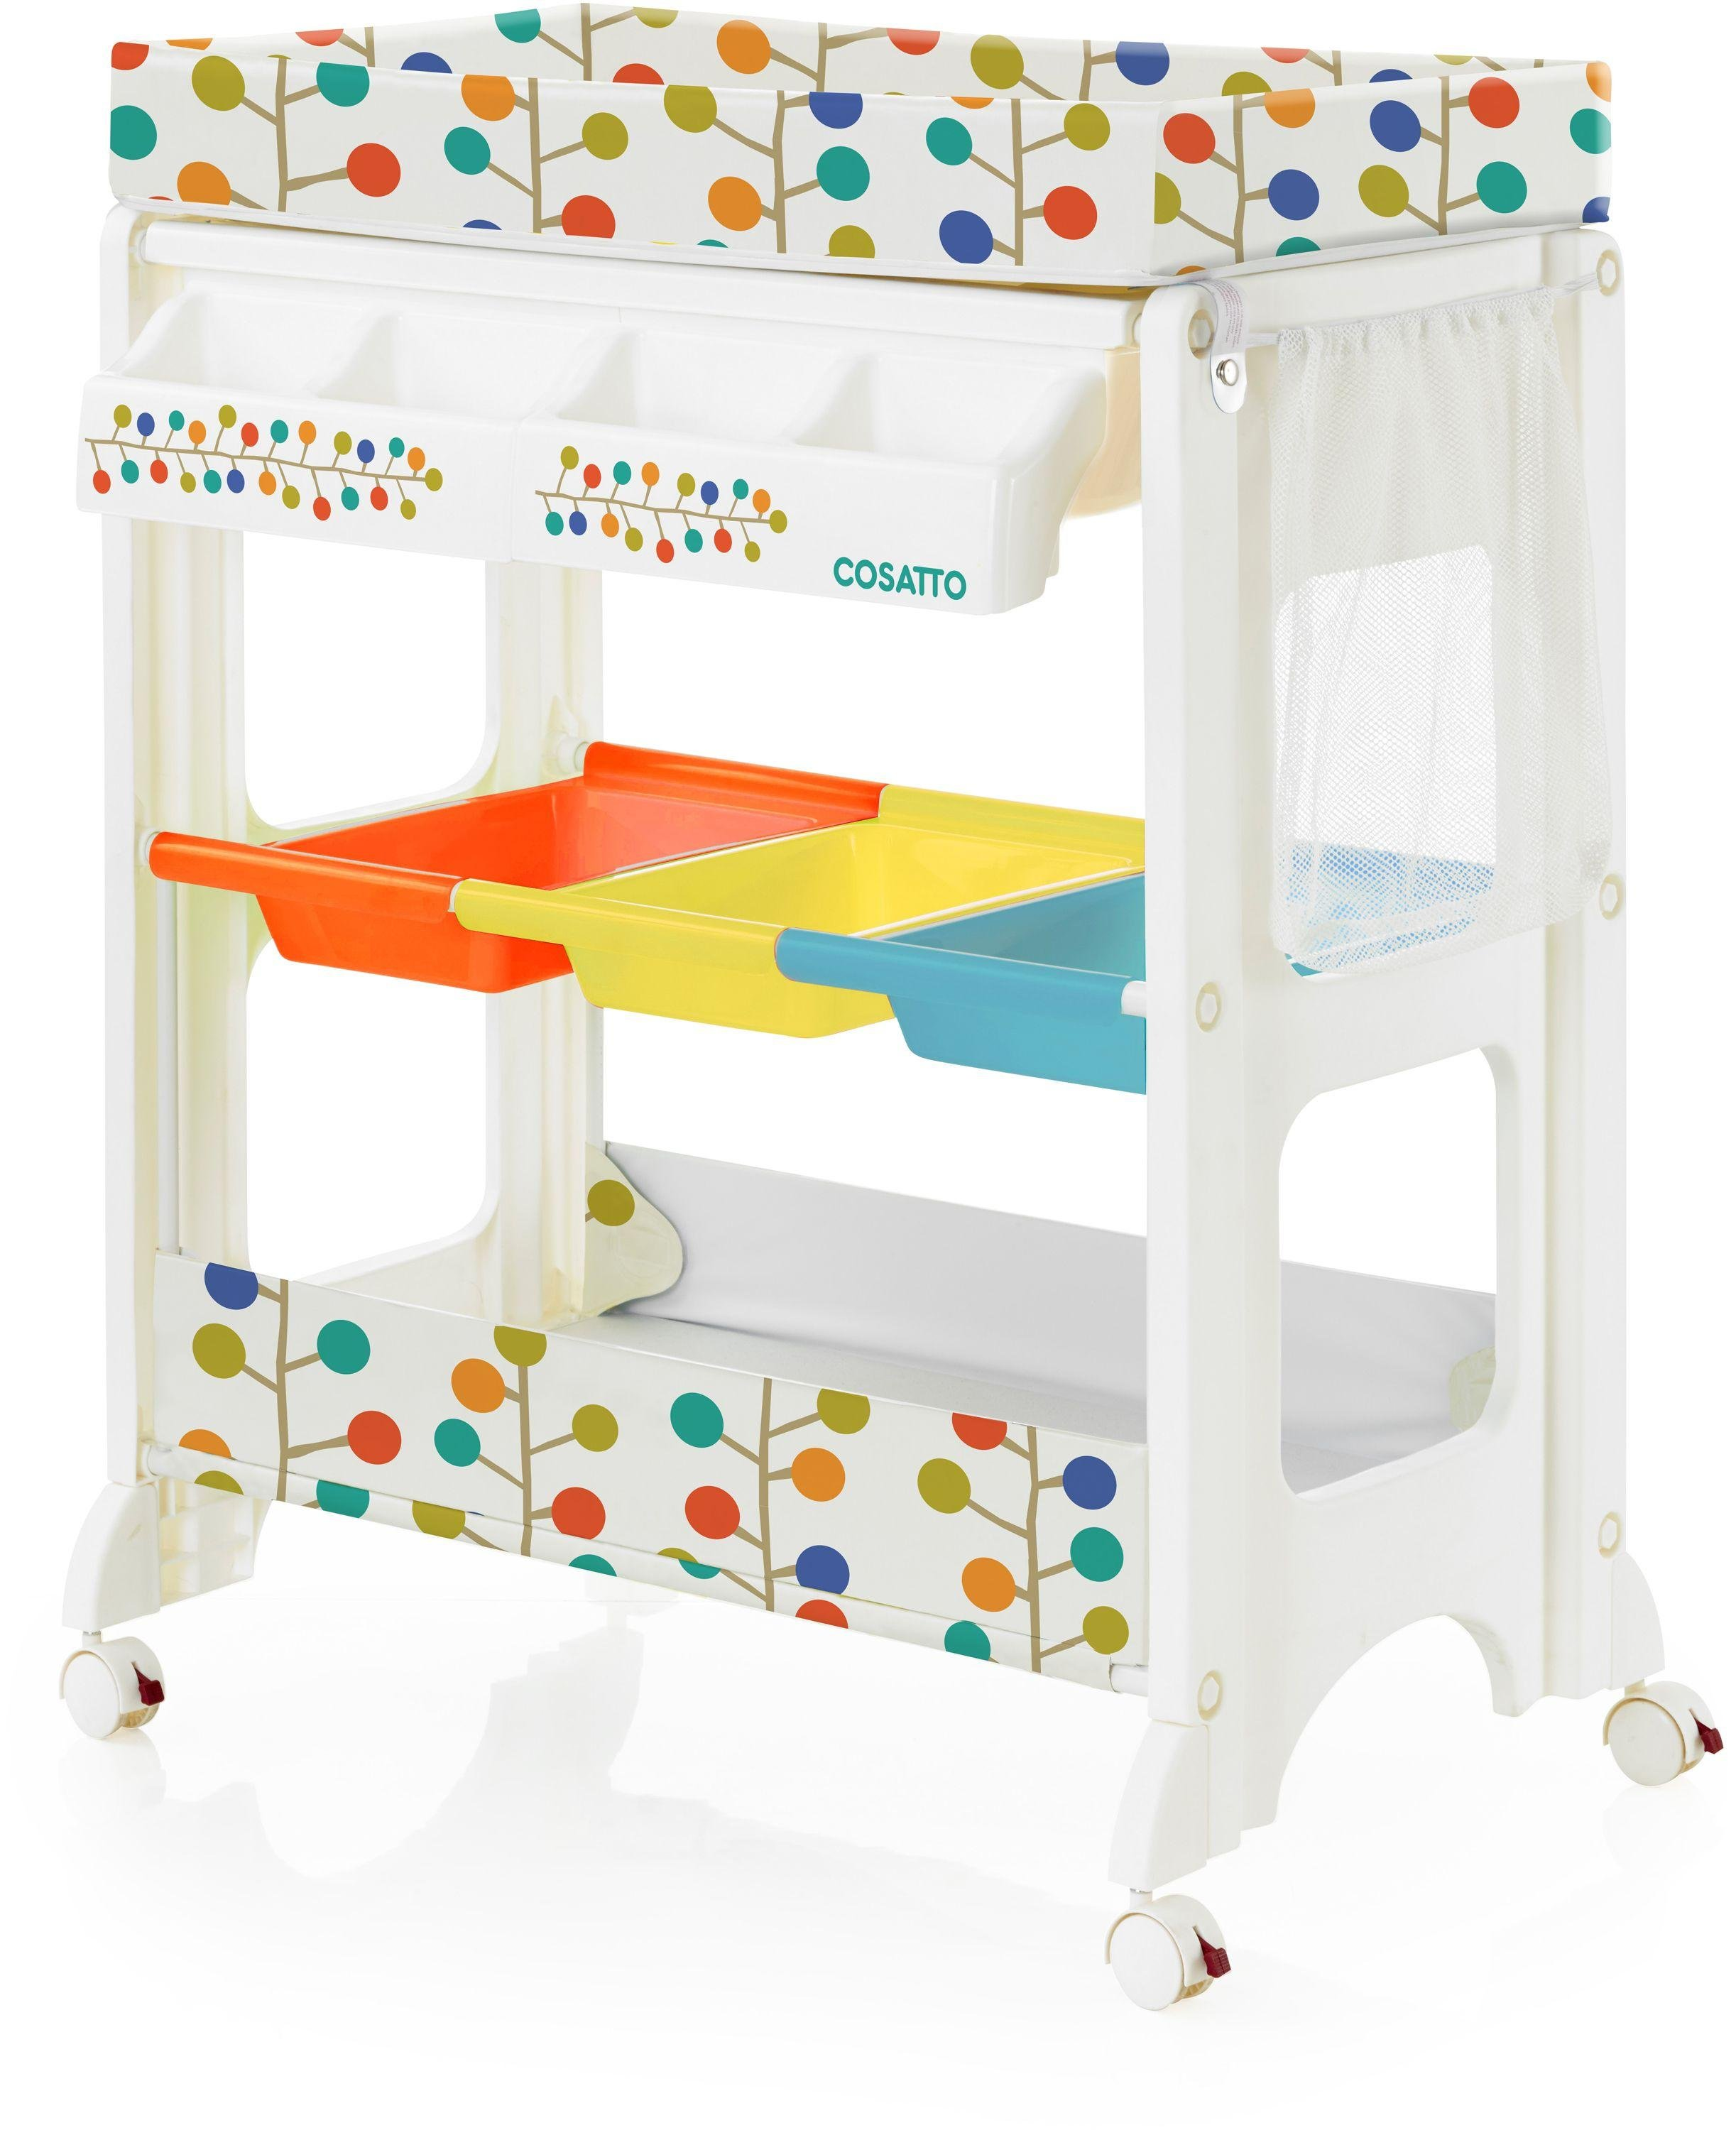 Cosatto Easi Peasi Changer and Bath - Fable